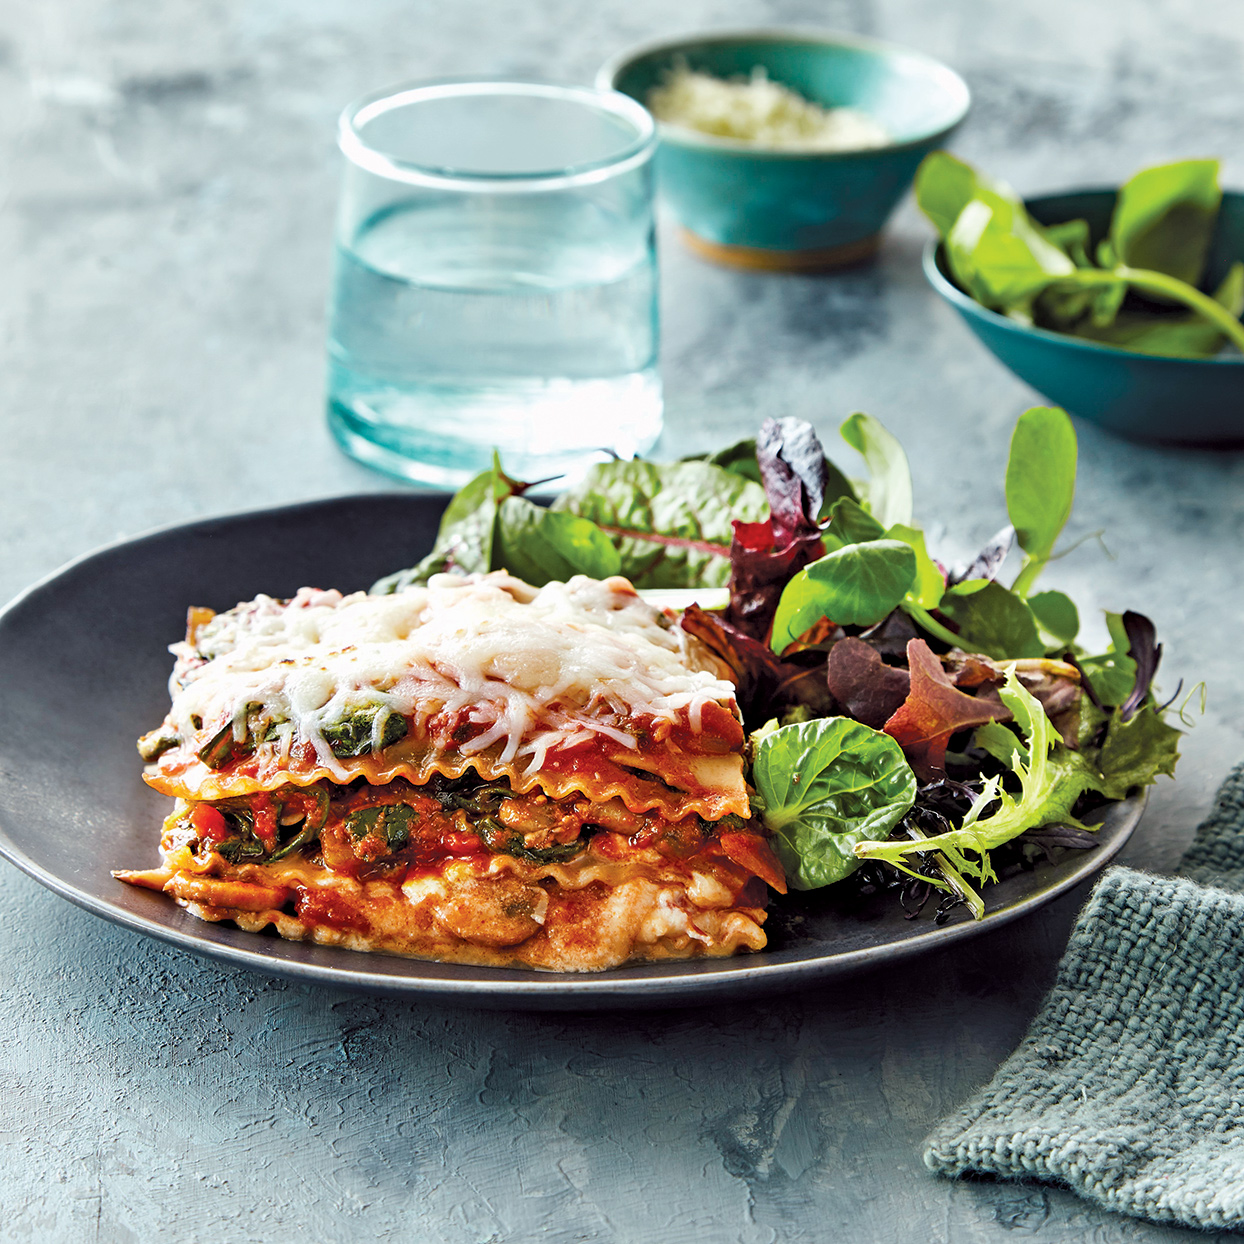 Cooking lasagna in your slow cooker rather than in the oven keeps it super moist and cheesy--just like lasagna should be. You can easily assemble this dish in the slow cooker ahead of time and refrigerate it. Just be sure to let the slow cooker come to room temperature before starting it so that the cook time is accurate. Serve with a green salad, if desired.